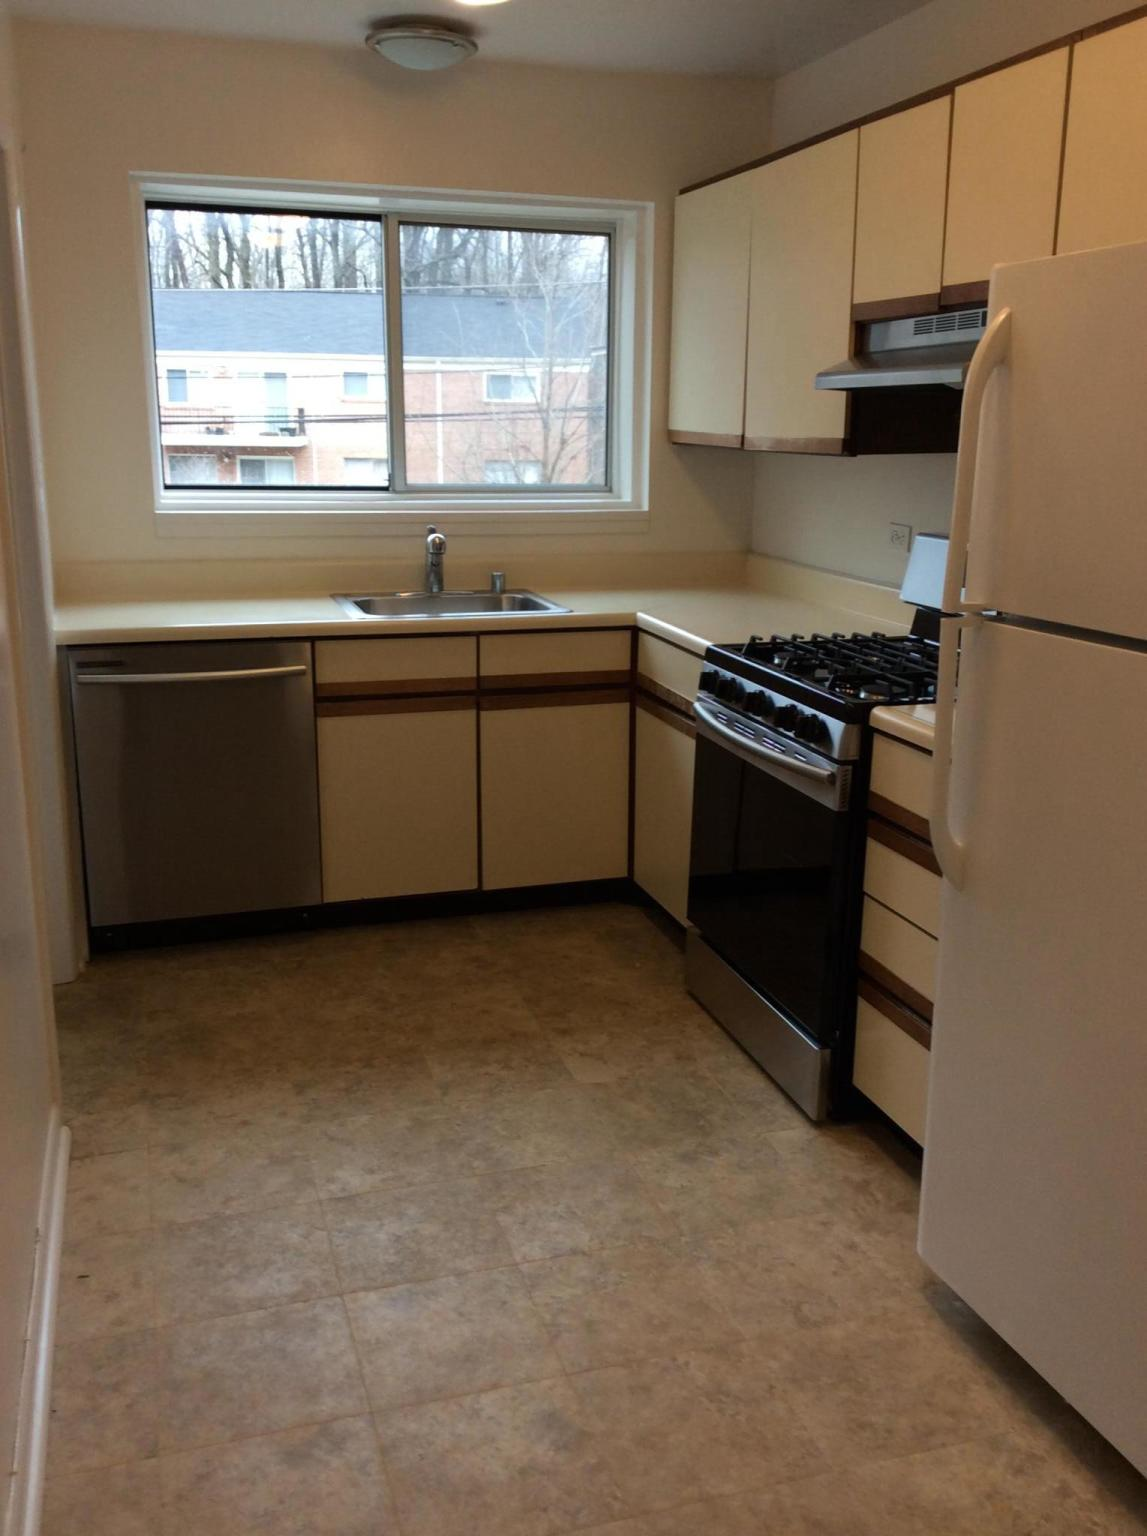 10620 Weymouth St #W104 For Rent - Bethesda, MD | Trulia